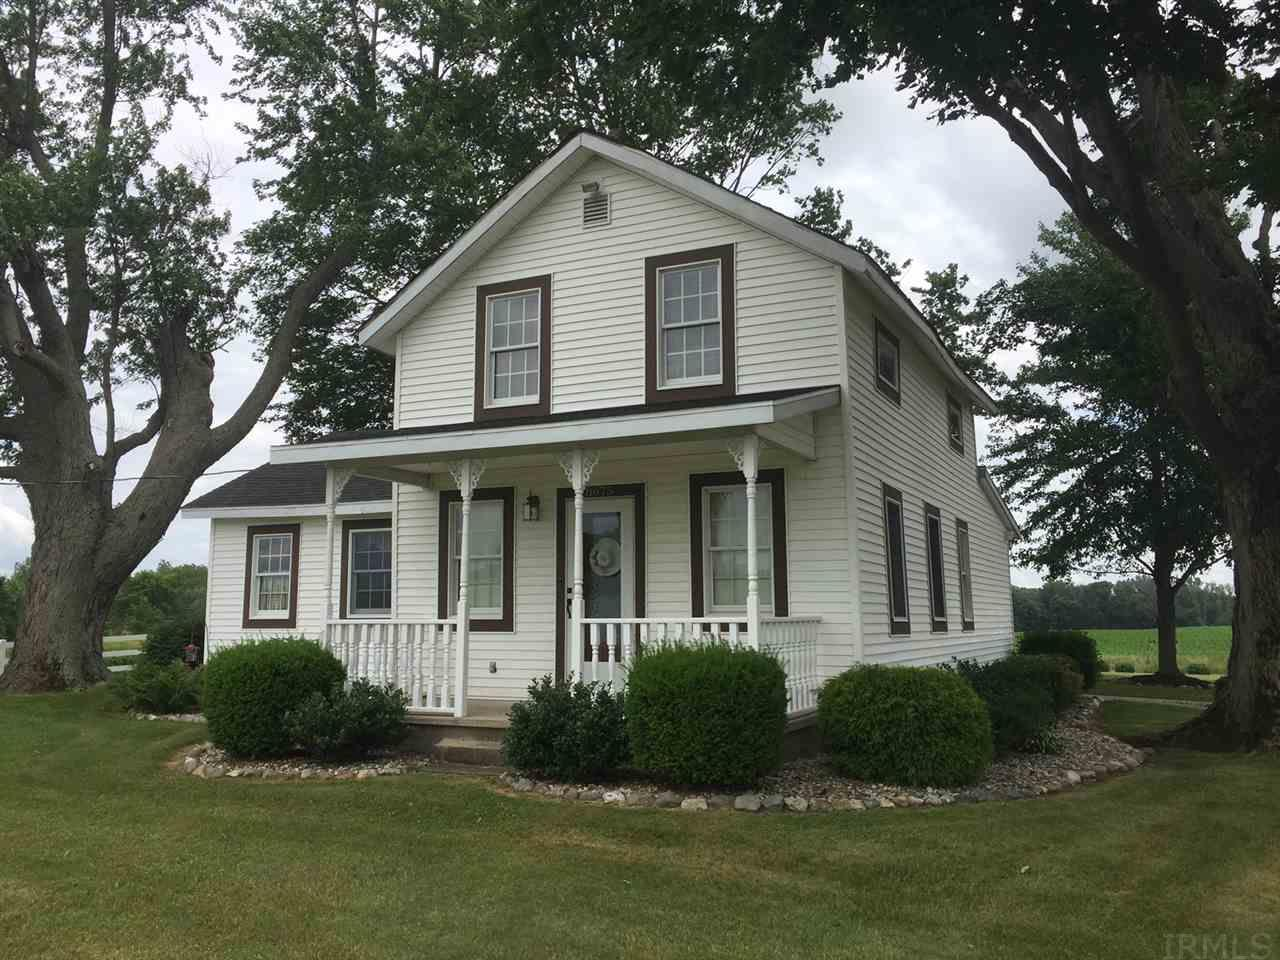 8675 E 7B Road, Plymouth, IN 46563